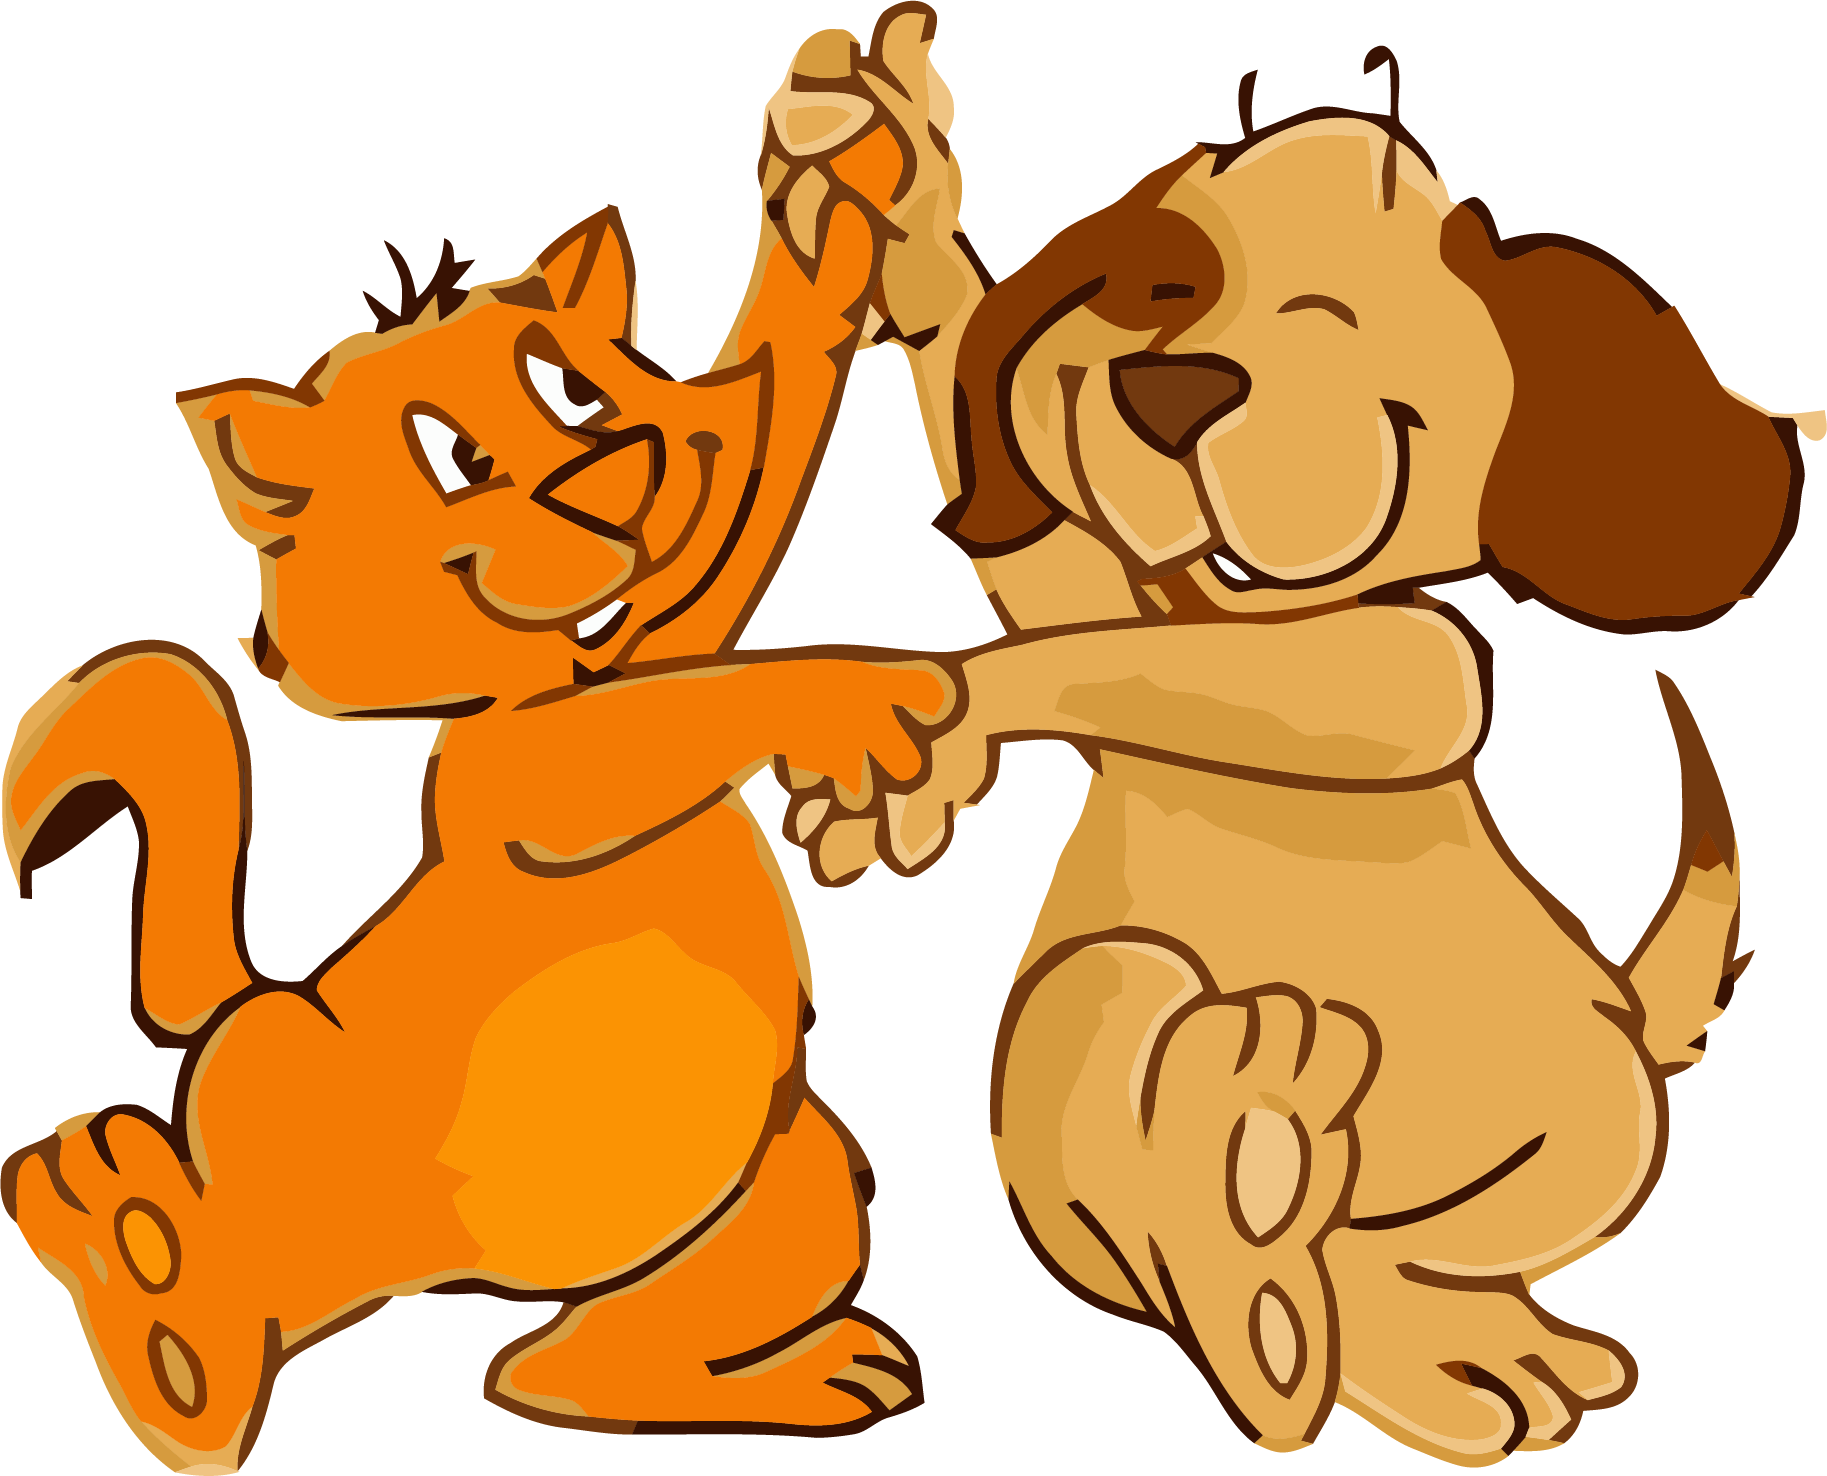 Dog dancing png. Cat and dance clipart